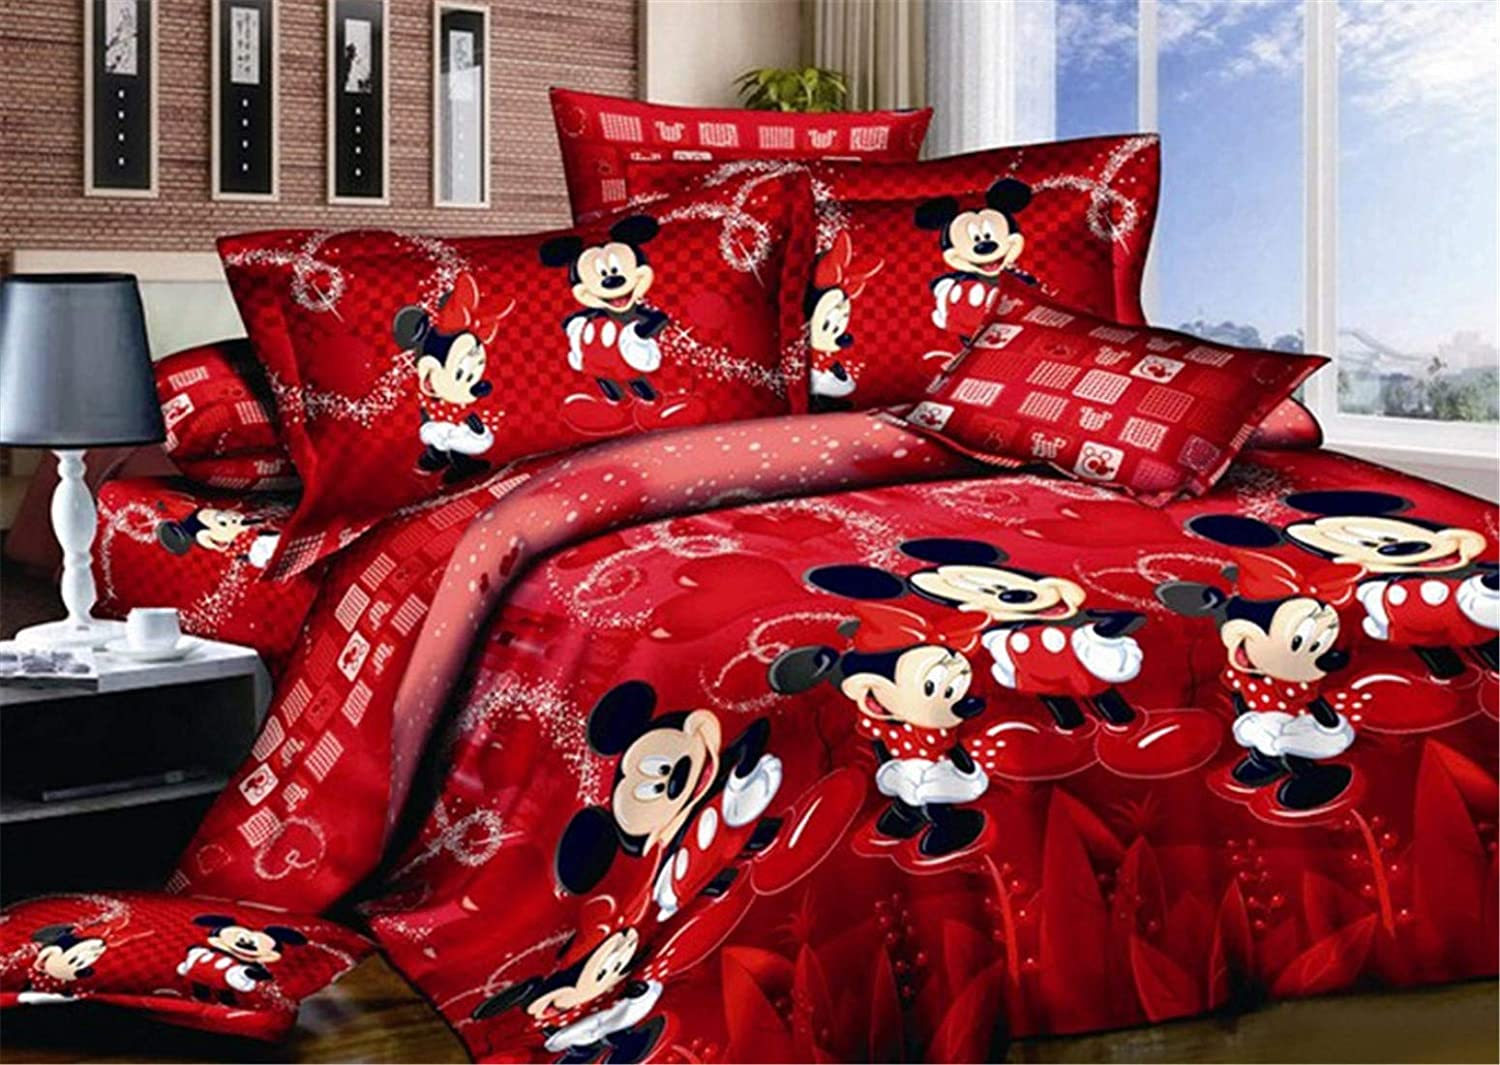 Wide Smile Duvet Cover Set Double Size Red Cartoon Mickey Mouse Children S Bedding Set Amazon Co Uk Kitchen Home